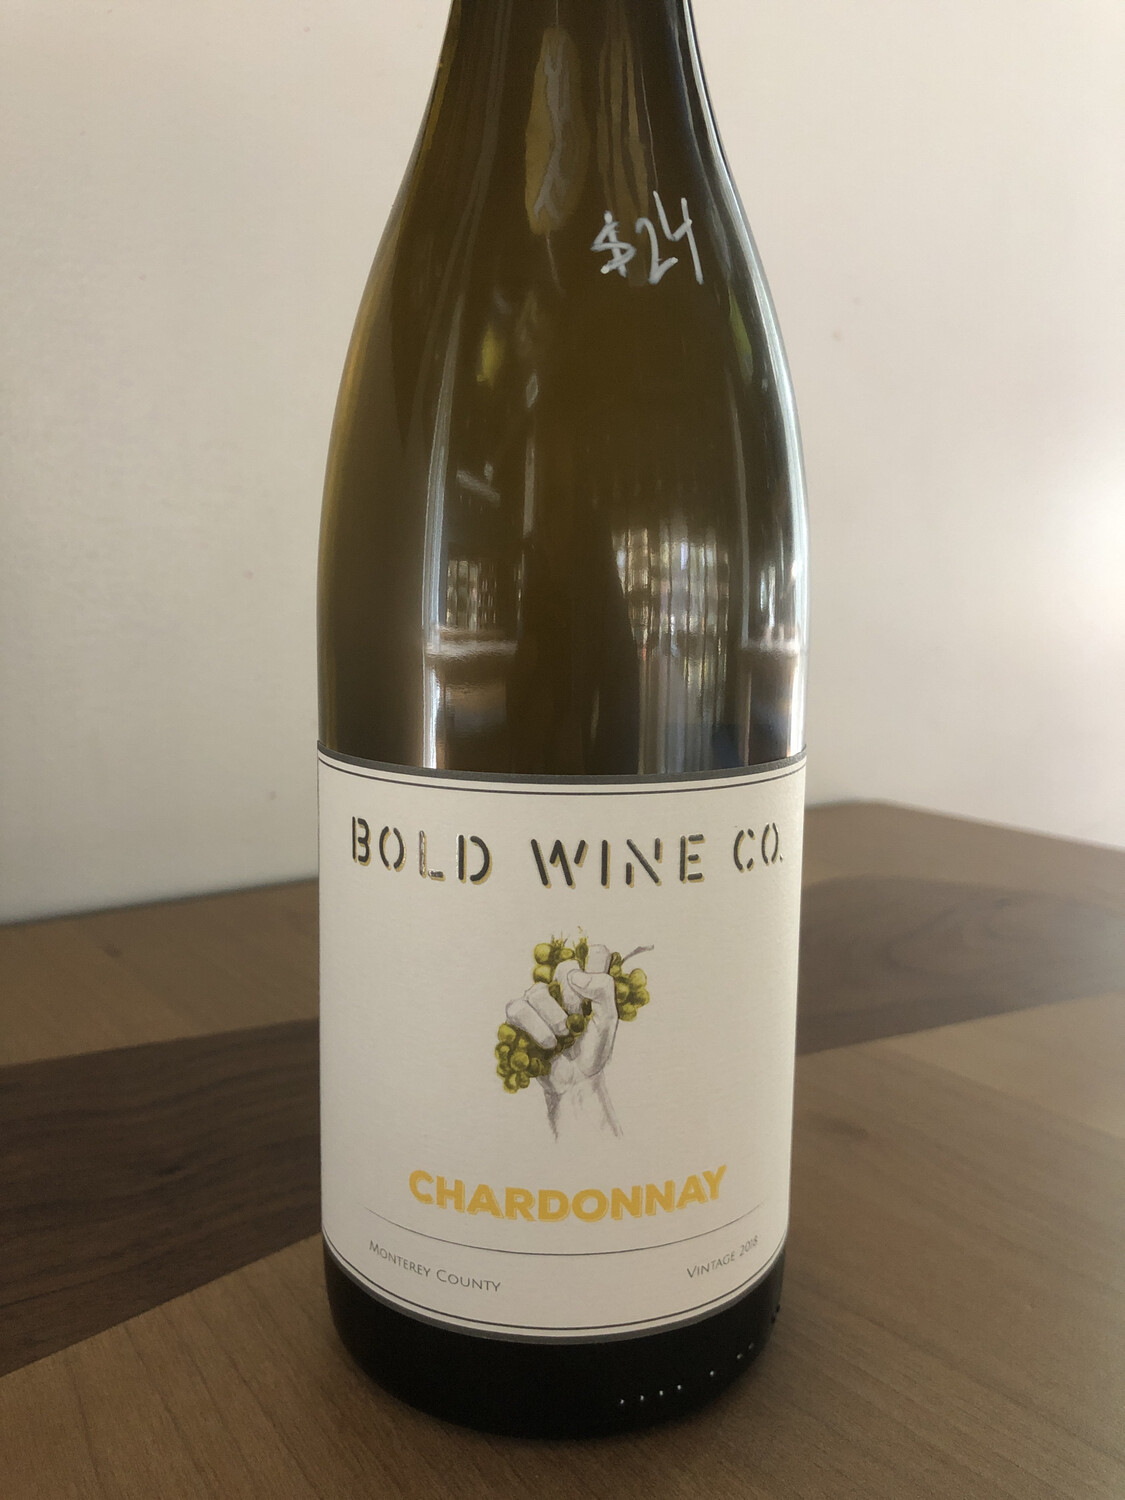 Bold Wine Co Chardonnay